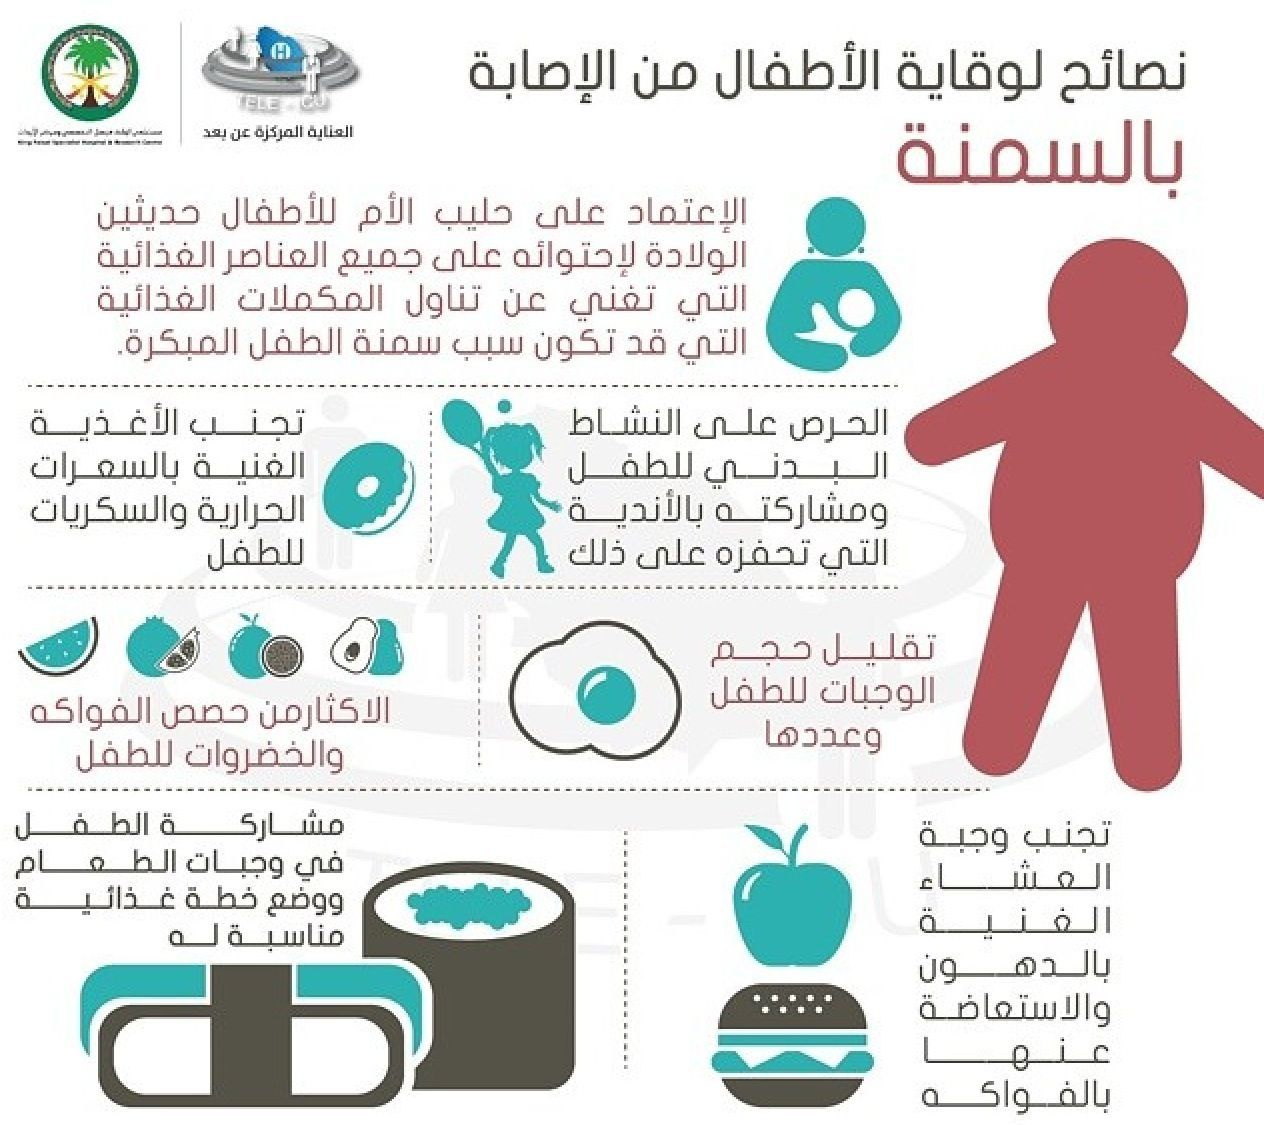 Pin By منوعات مفيدة On معلومات صحية Baby Education Kids And Parenting Parenting